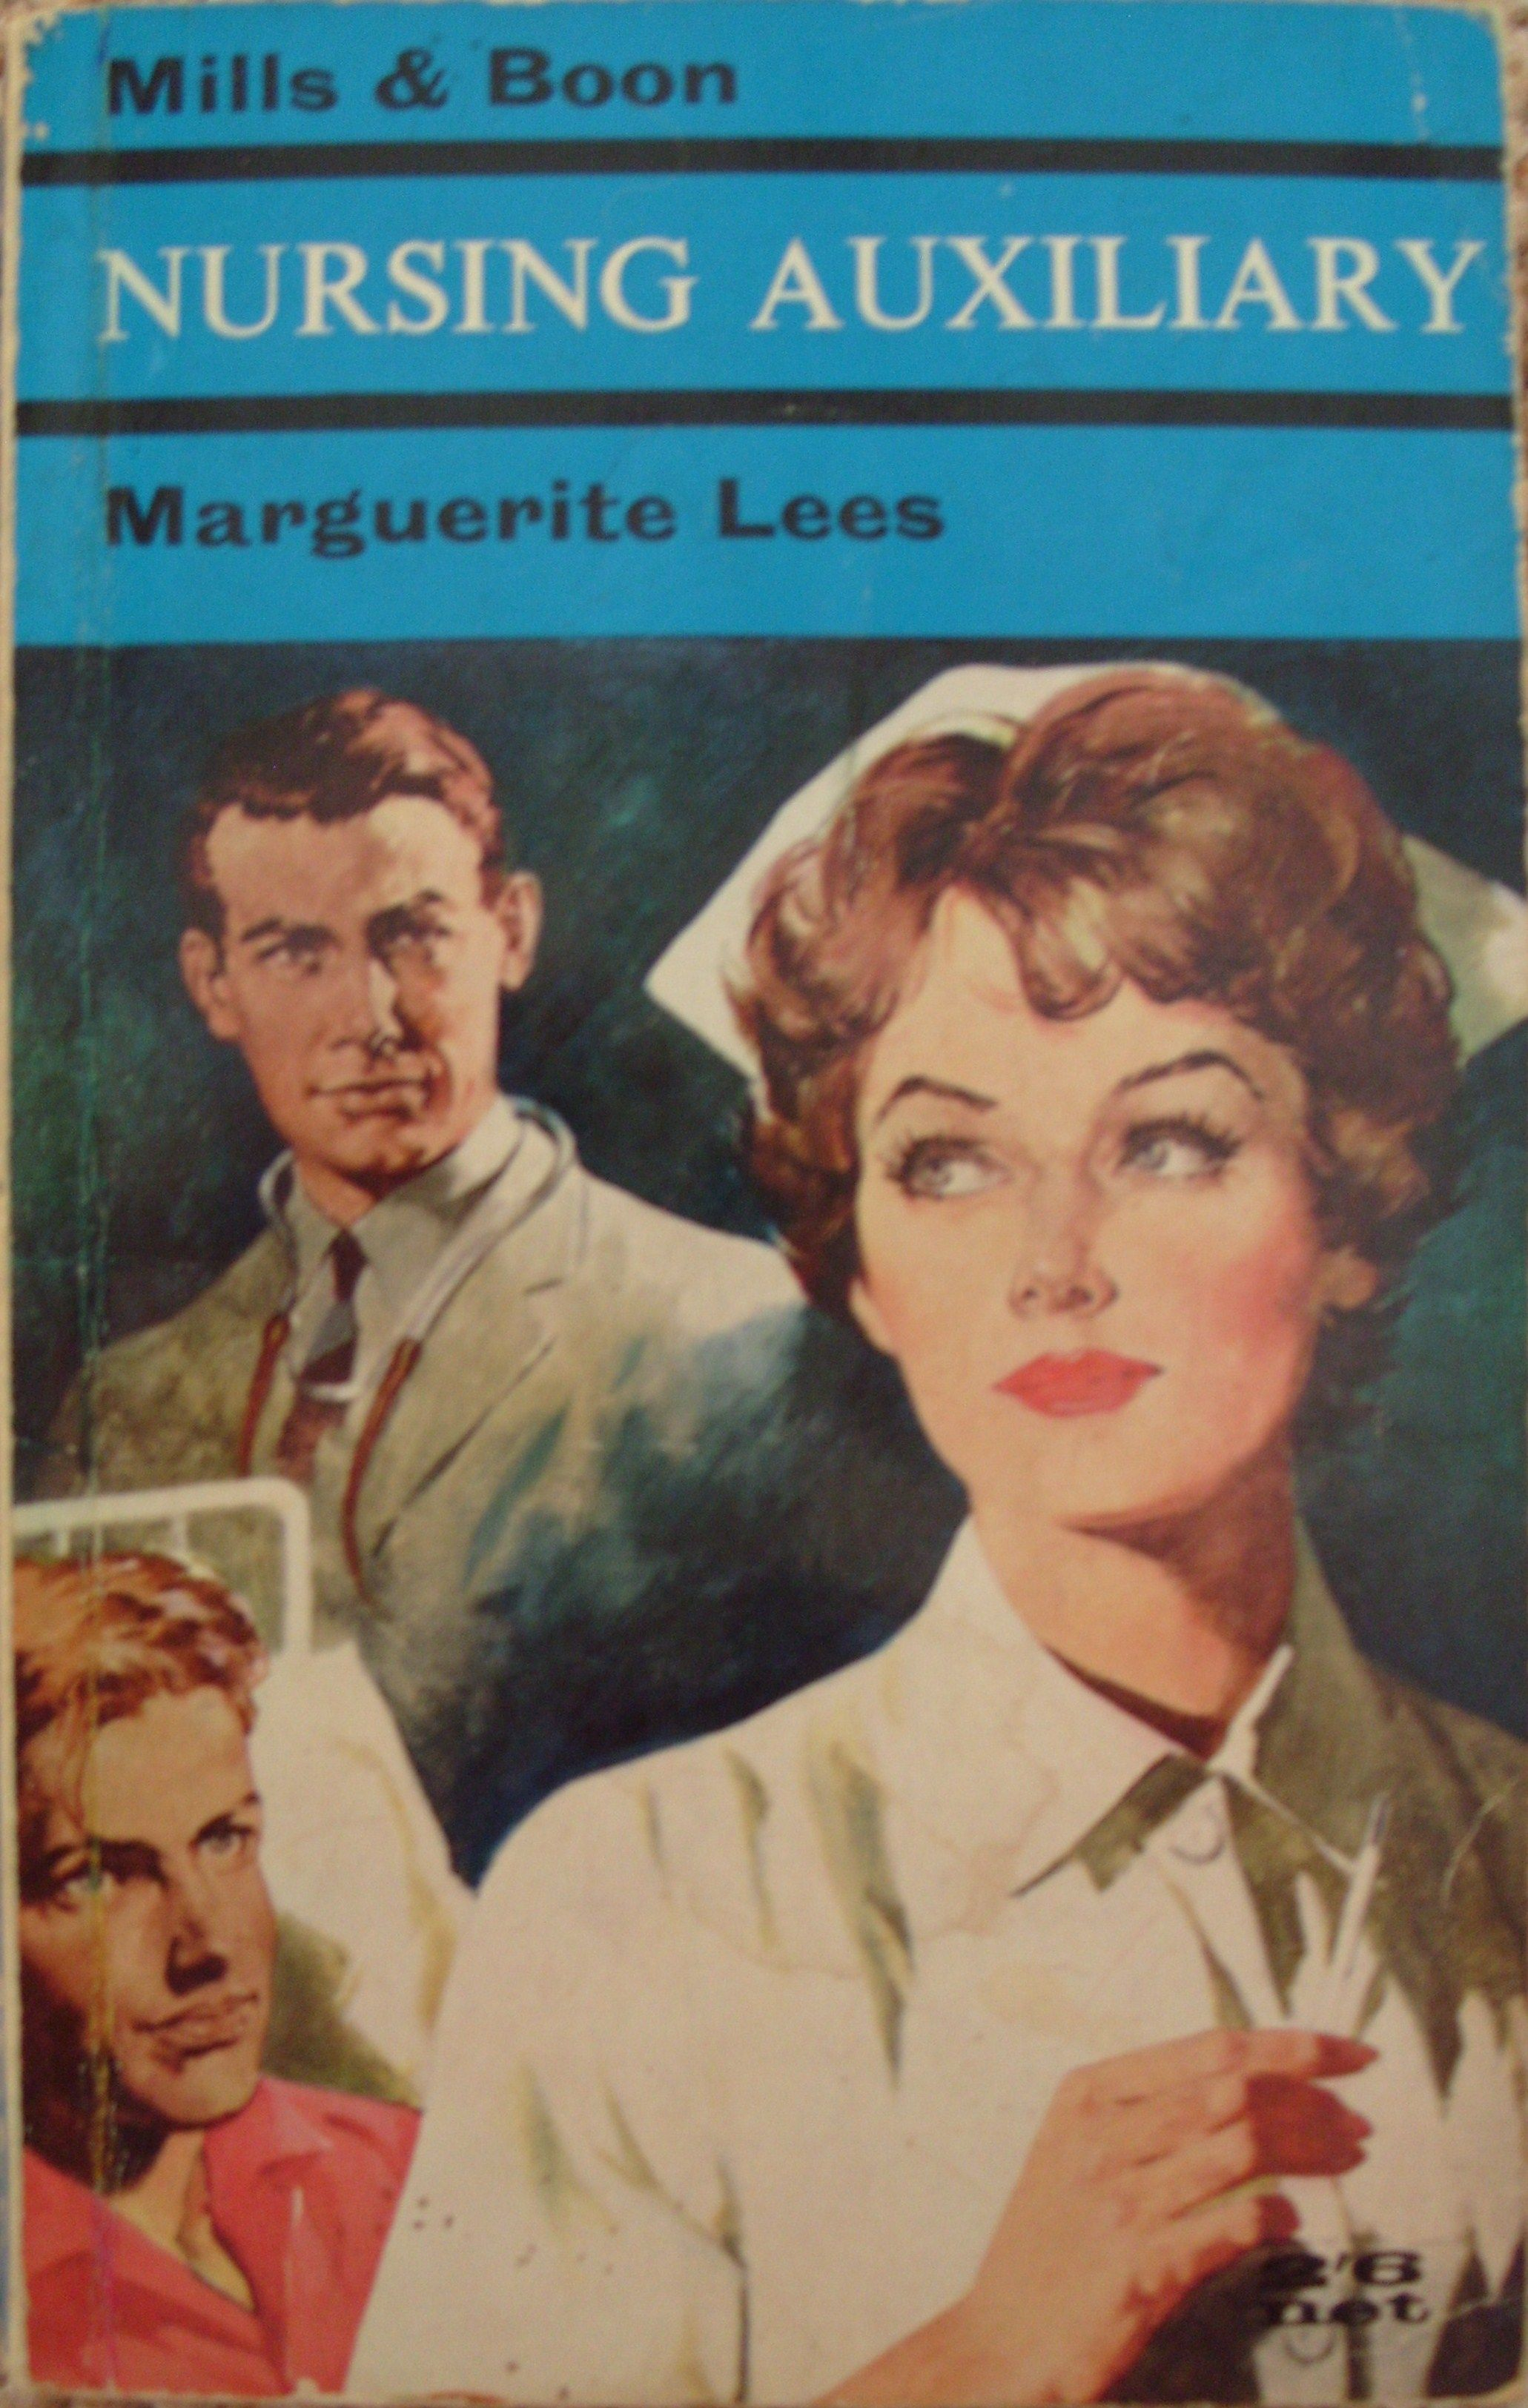 Nursing Auxiliary by Marguerite Lees no.102 printed by Mills and Boon in 1962.